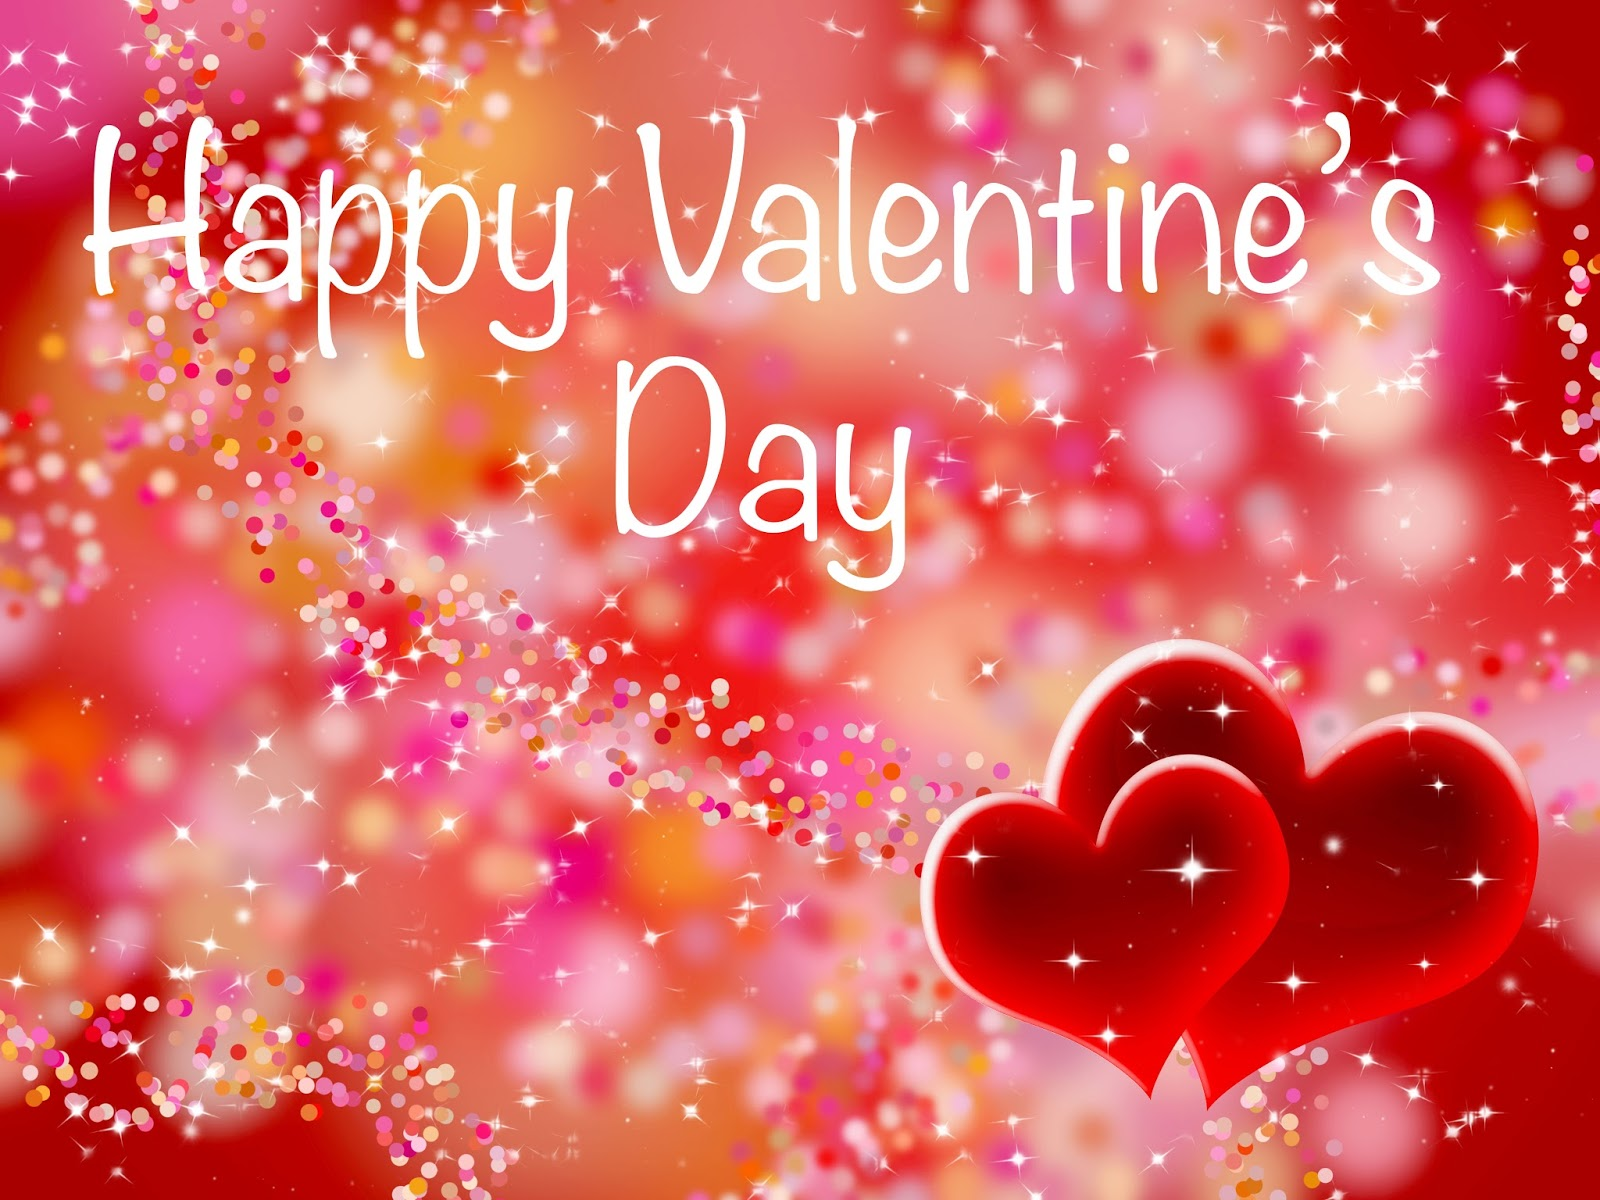 Happy Valentine Day 2018 Pictures, Images & Photos Free Download